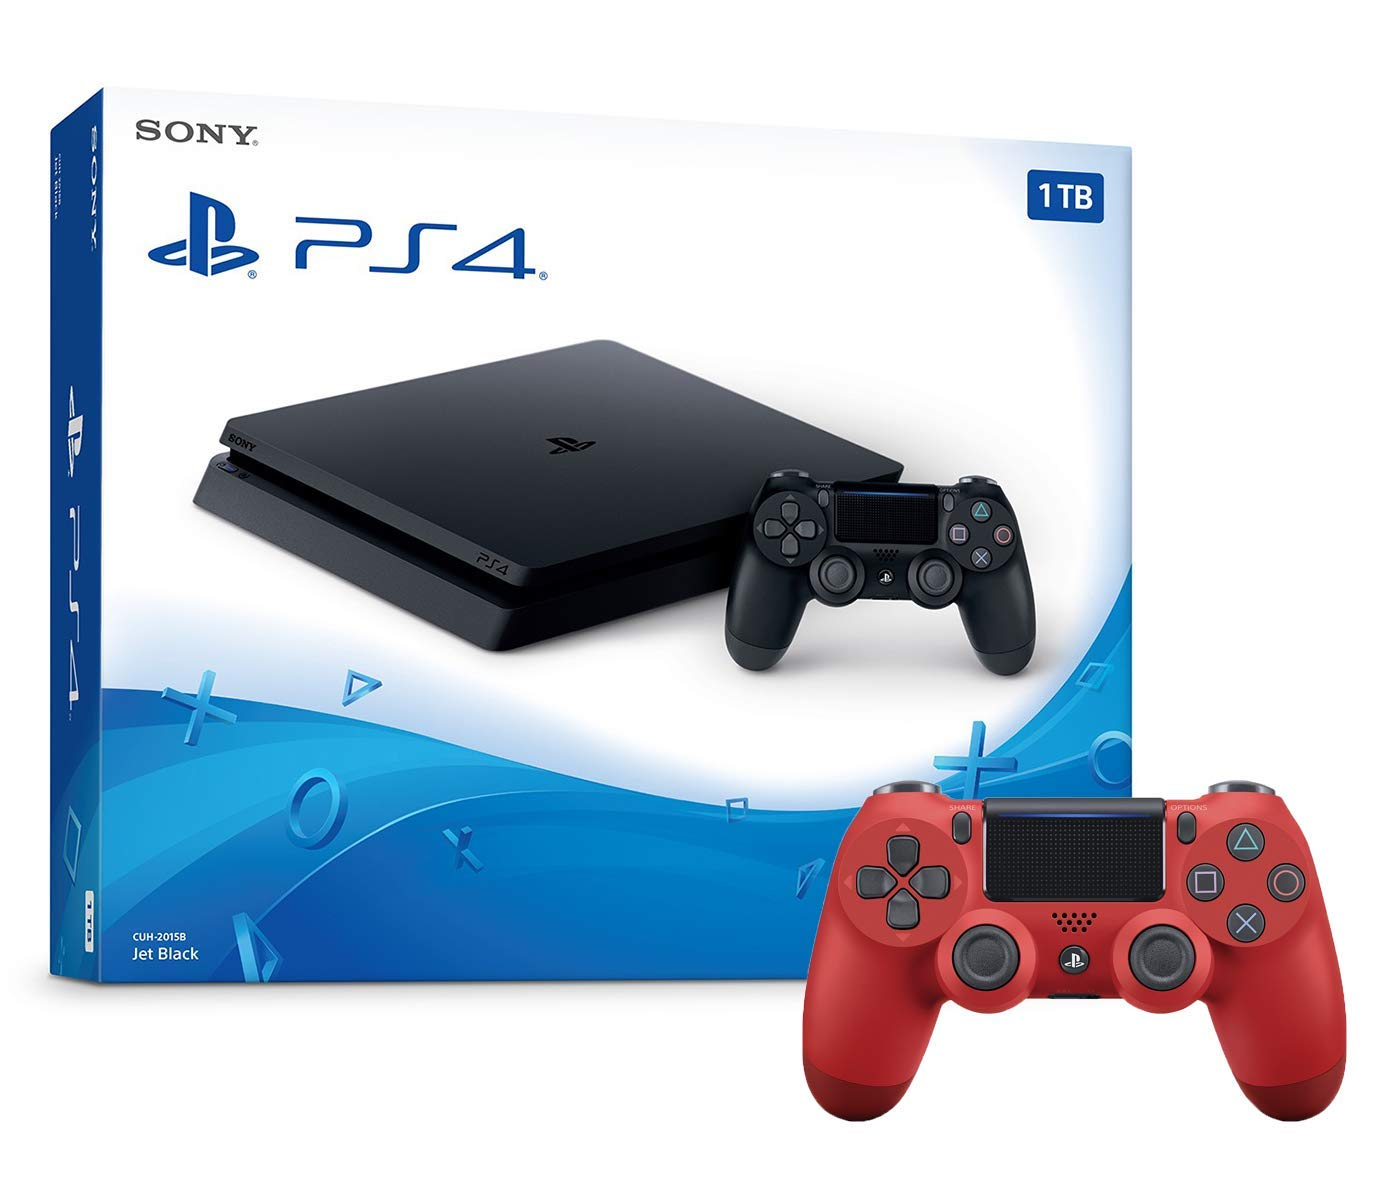 Playstation 4 1TB Slim Console and Extra Red Dualshock 4 Wireless Controller Bundle